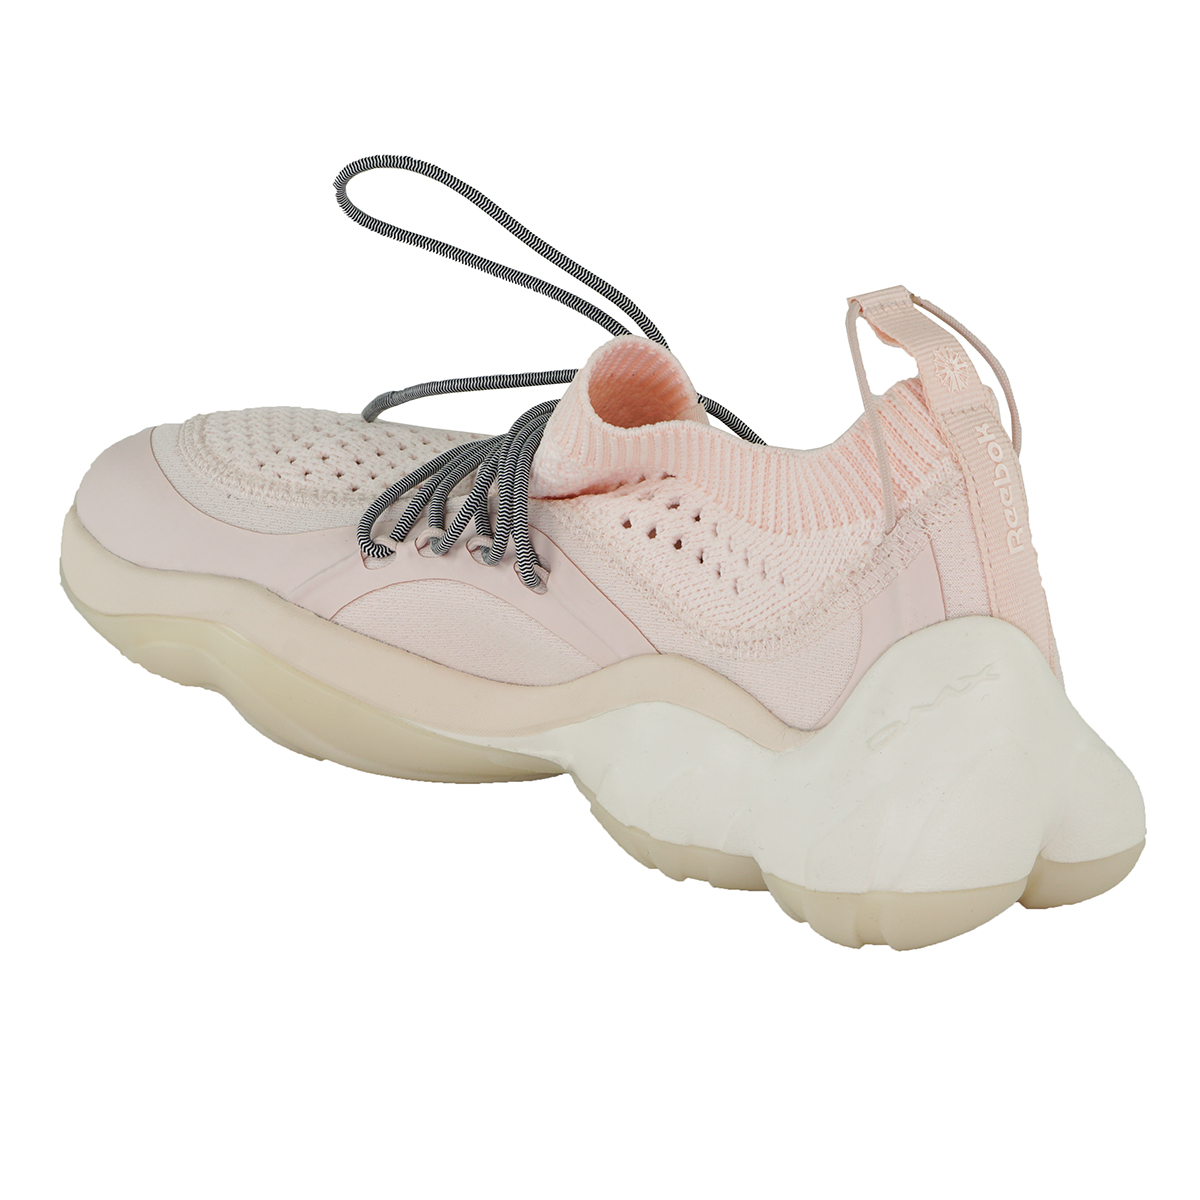 e1103d1eb1f Reebok Men s DMX Fusion CI Shoes Pale Pink White Chalk 10.5 ...